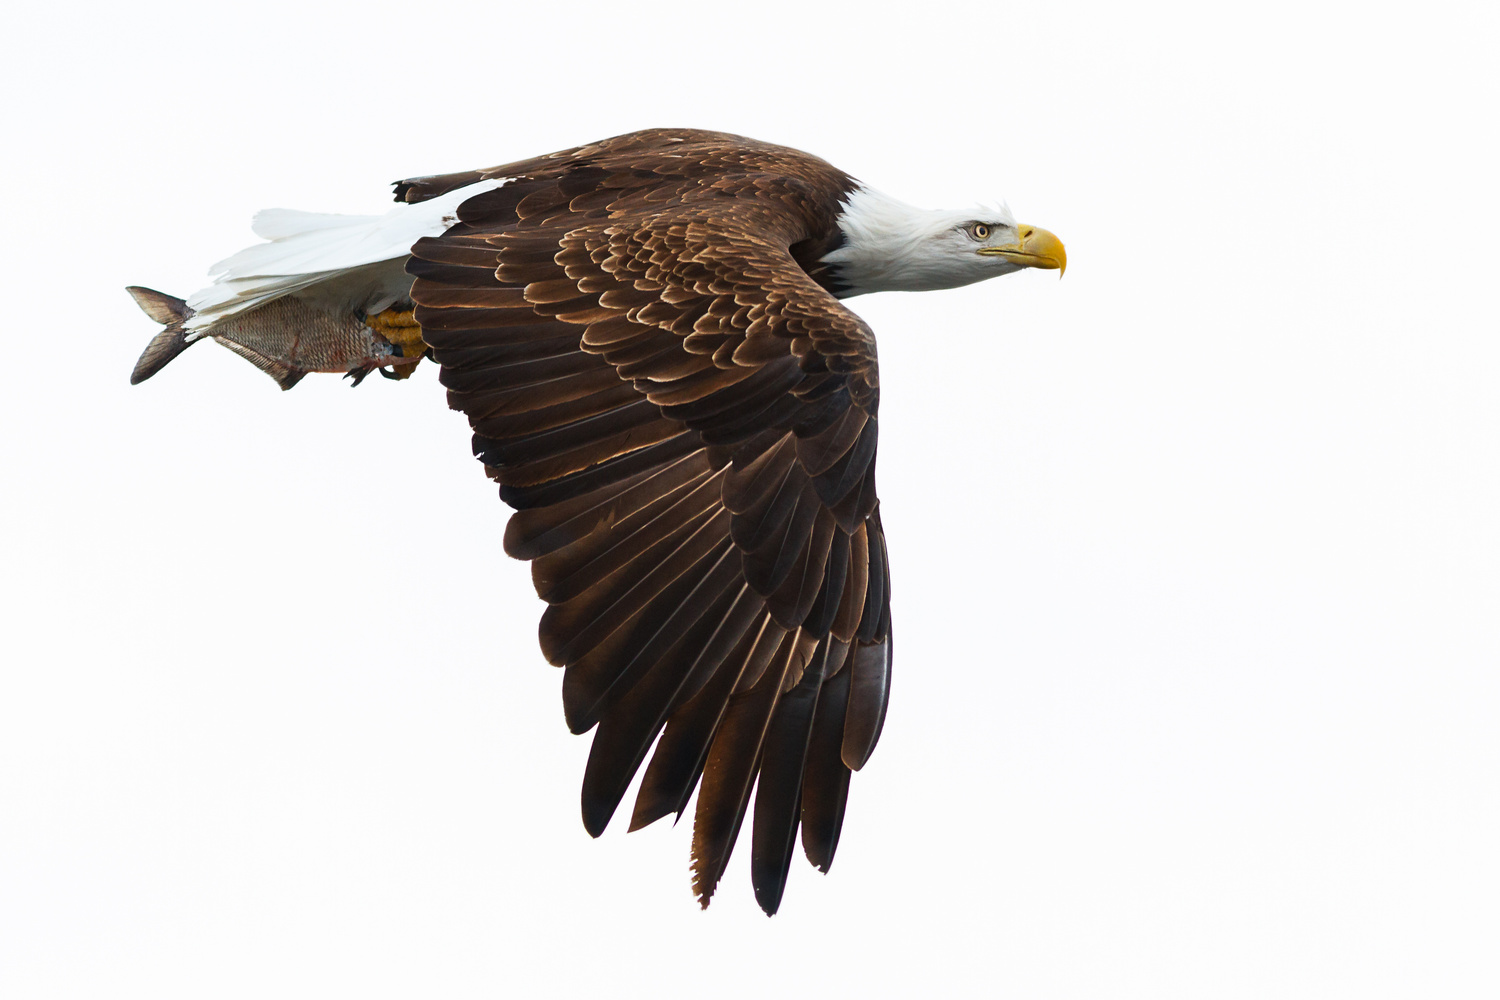 Profile of an Eagle Flyby by Troy Marcy